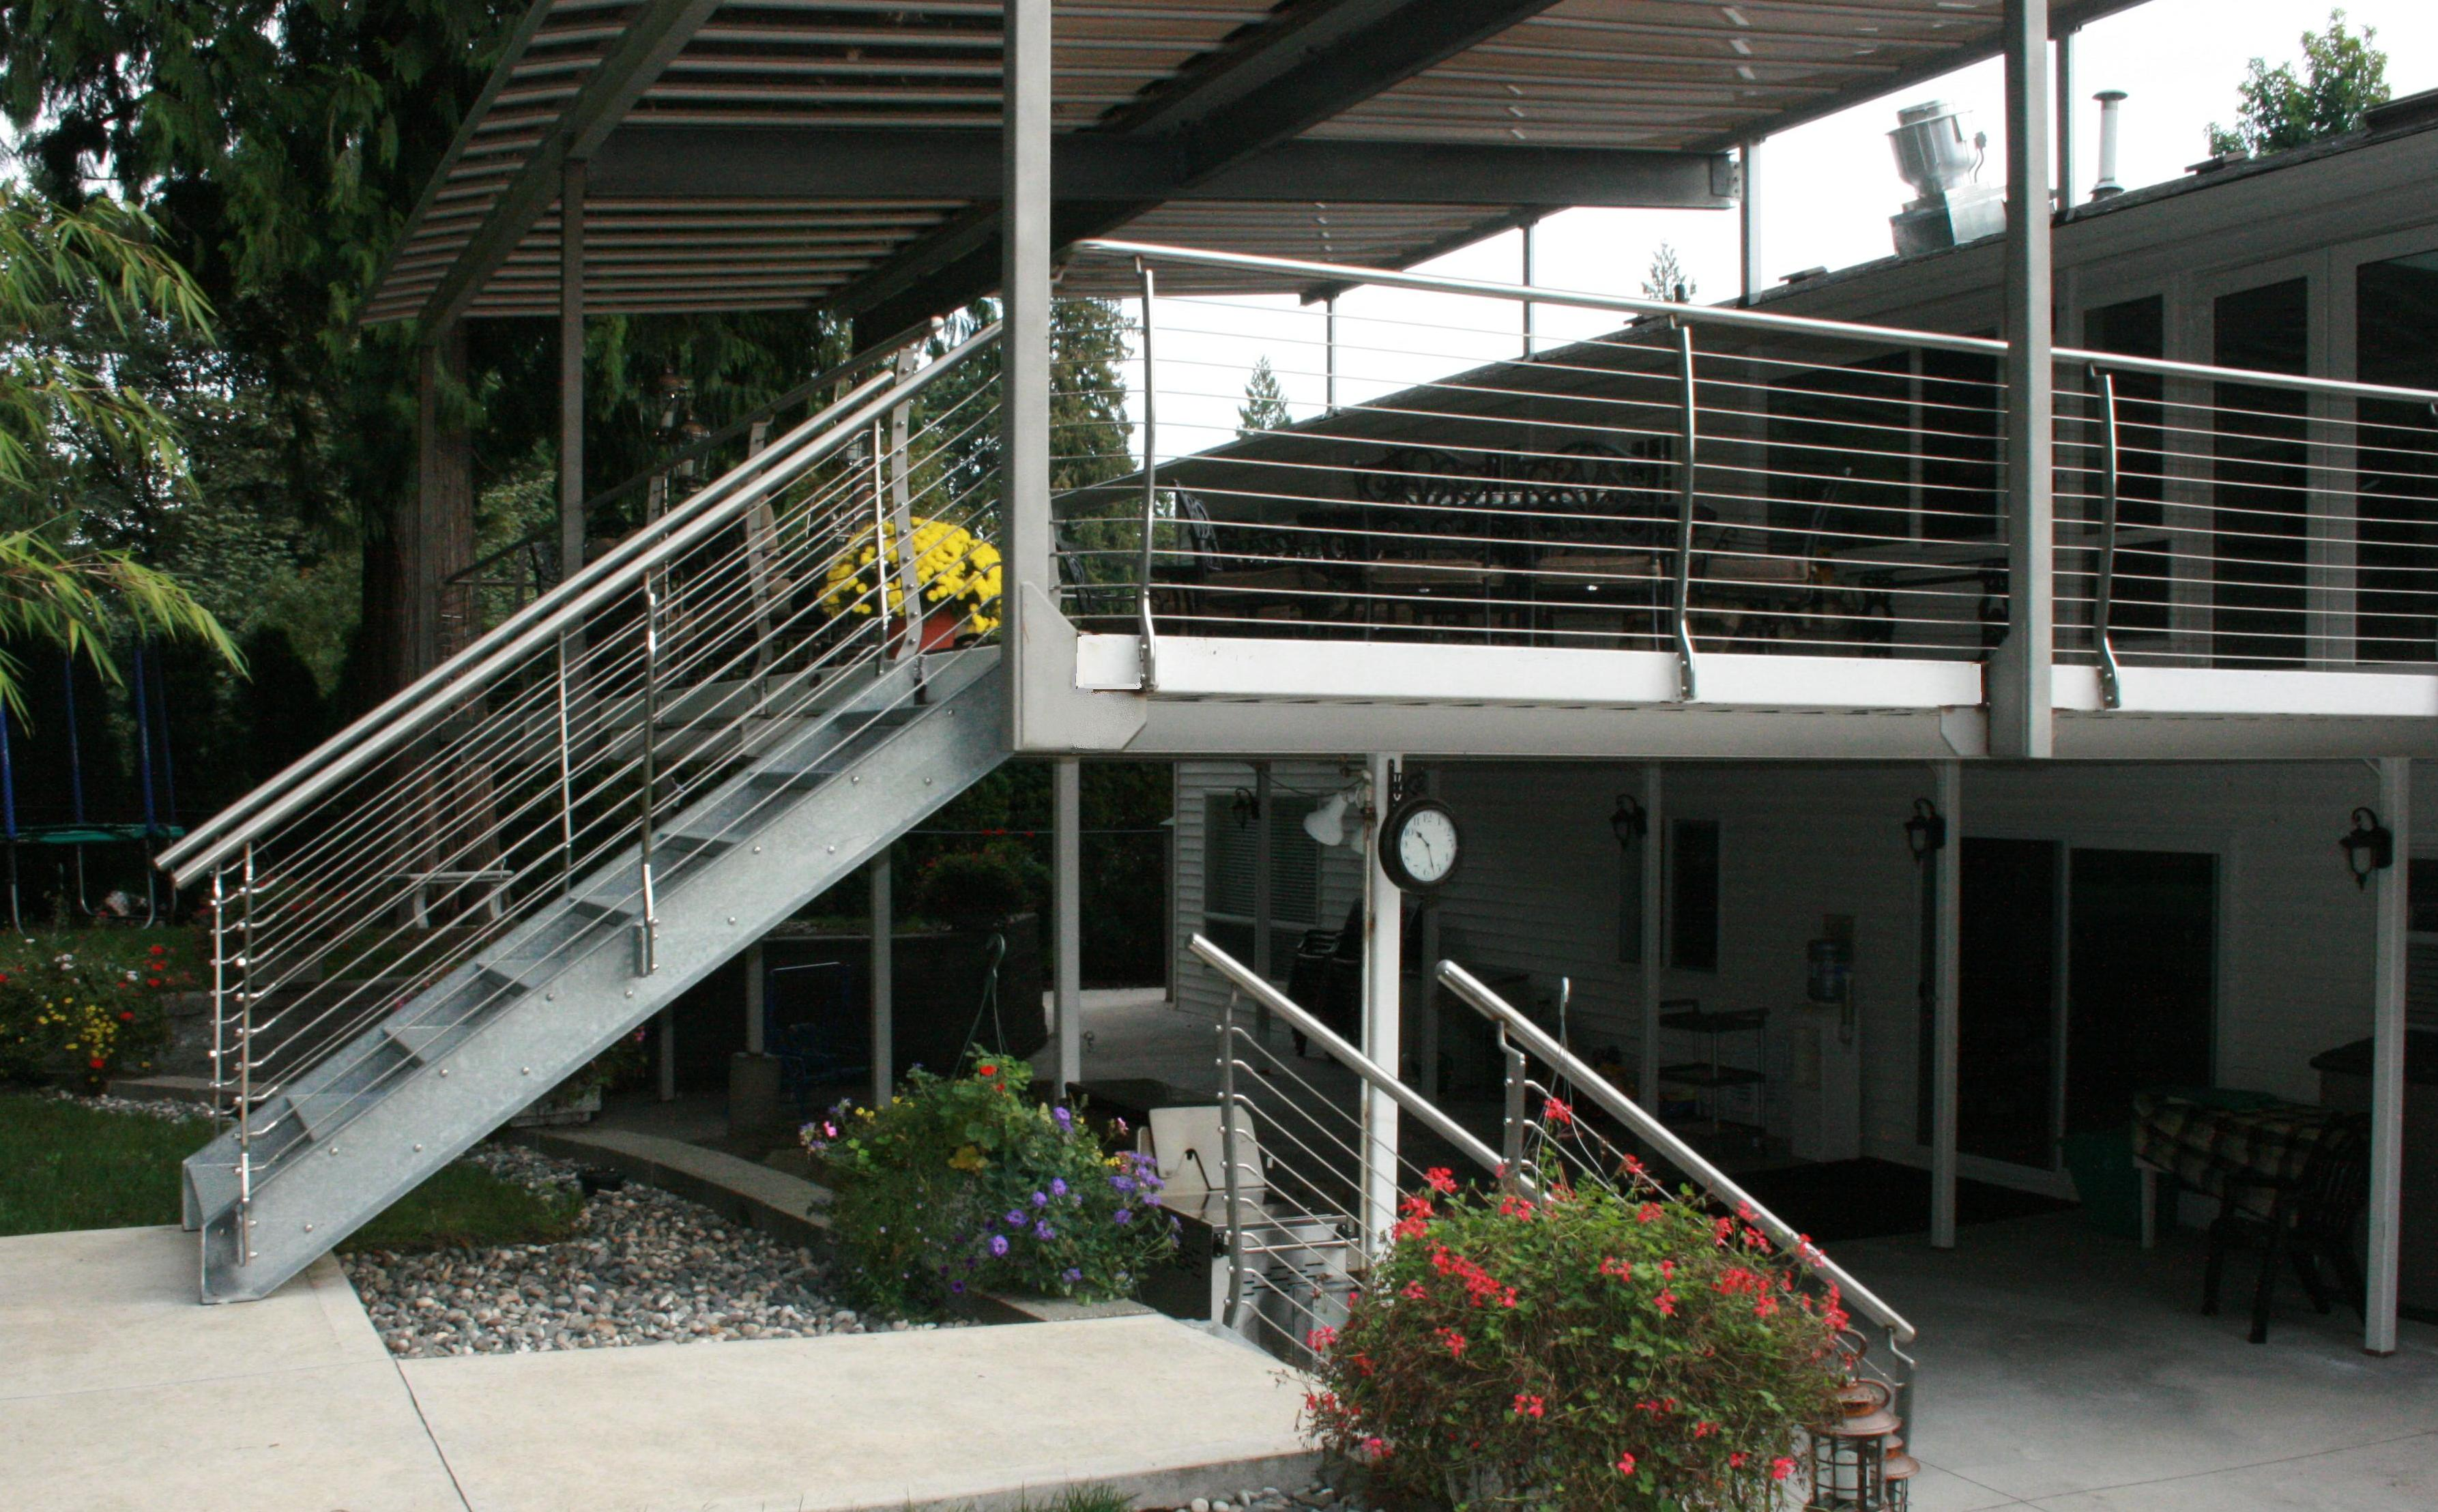 S T I Steeltec Industries Ltd – Stainless Steel Patio Railing with